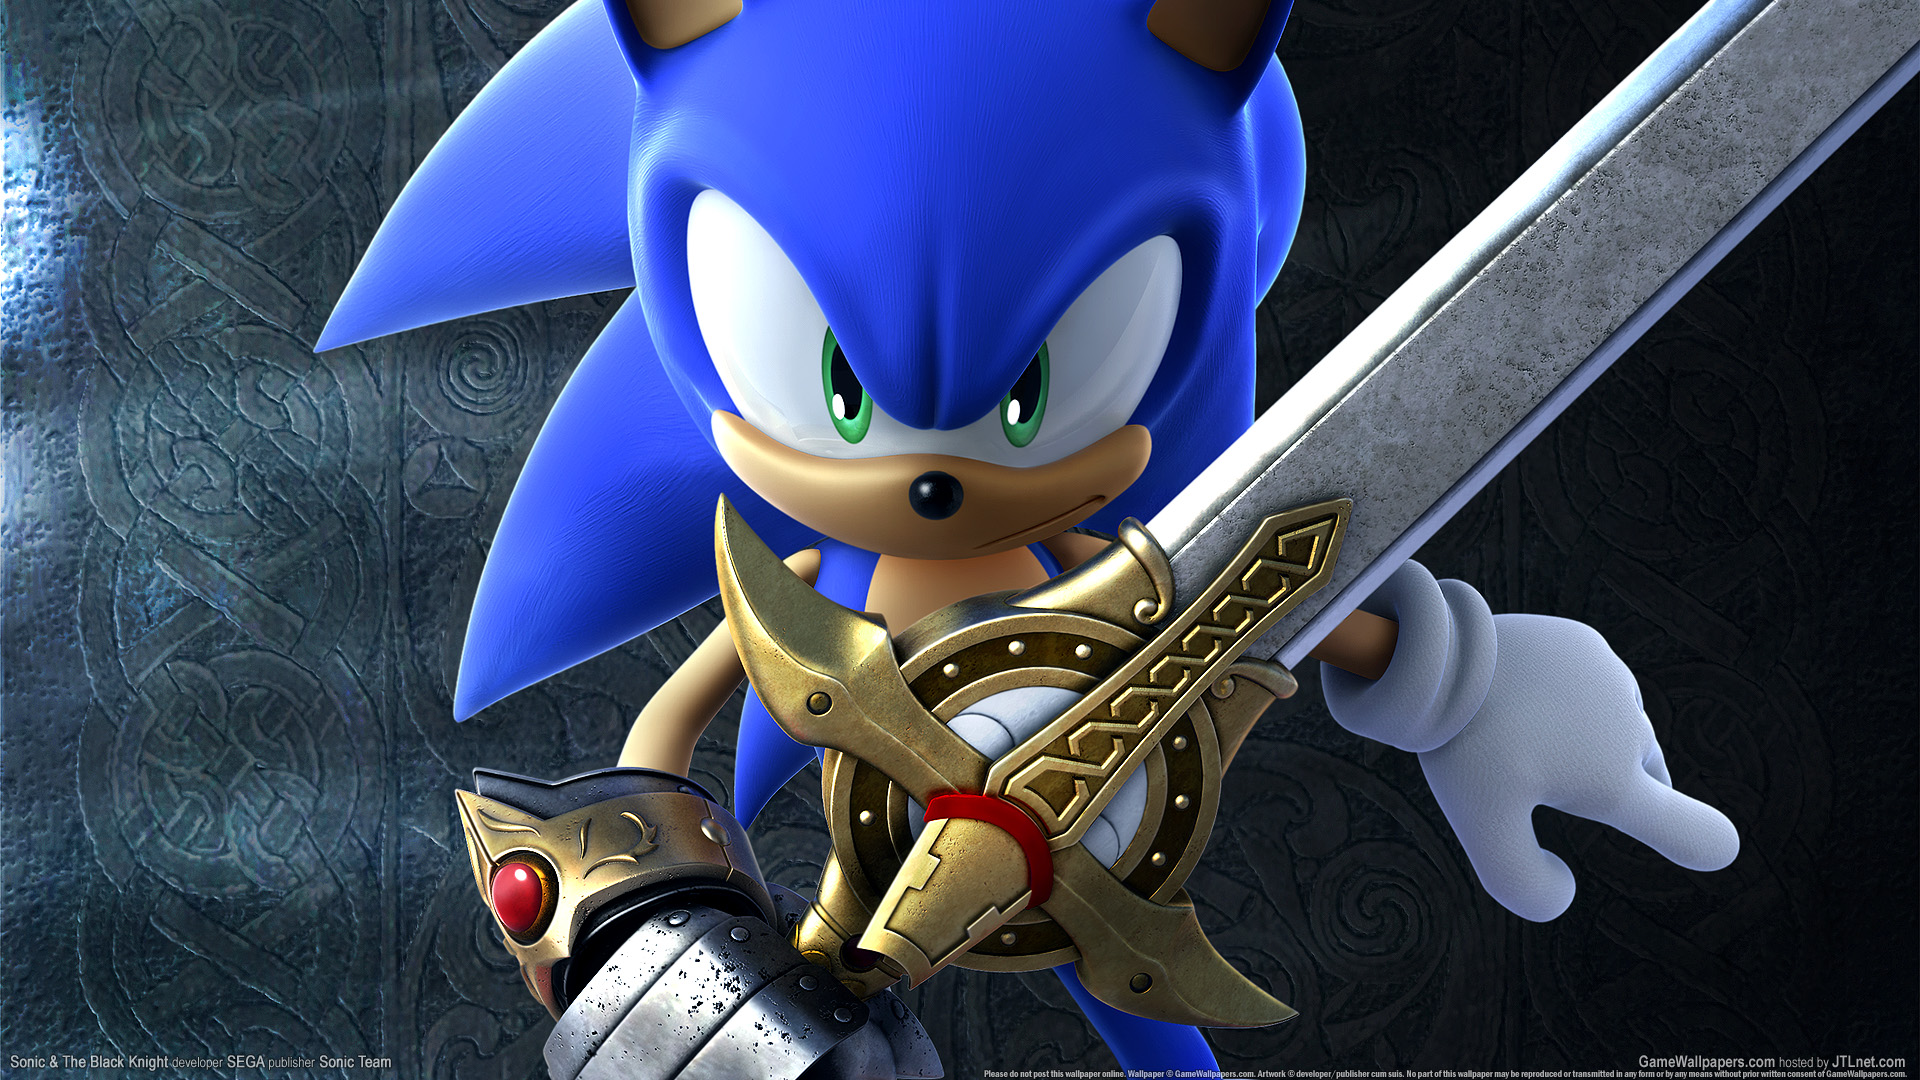 Sonic The Black Knight Wallpaper 01 1920x1080